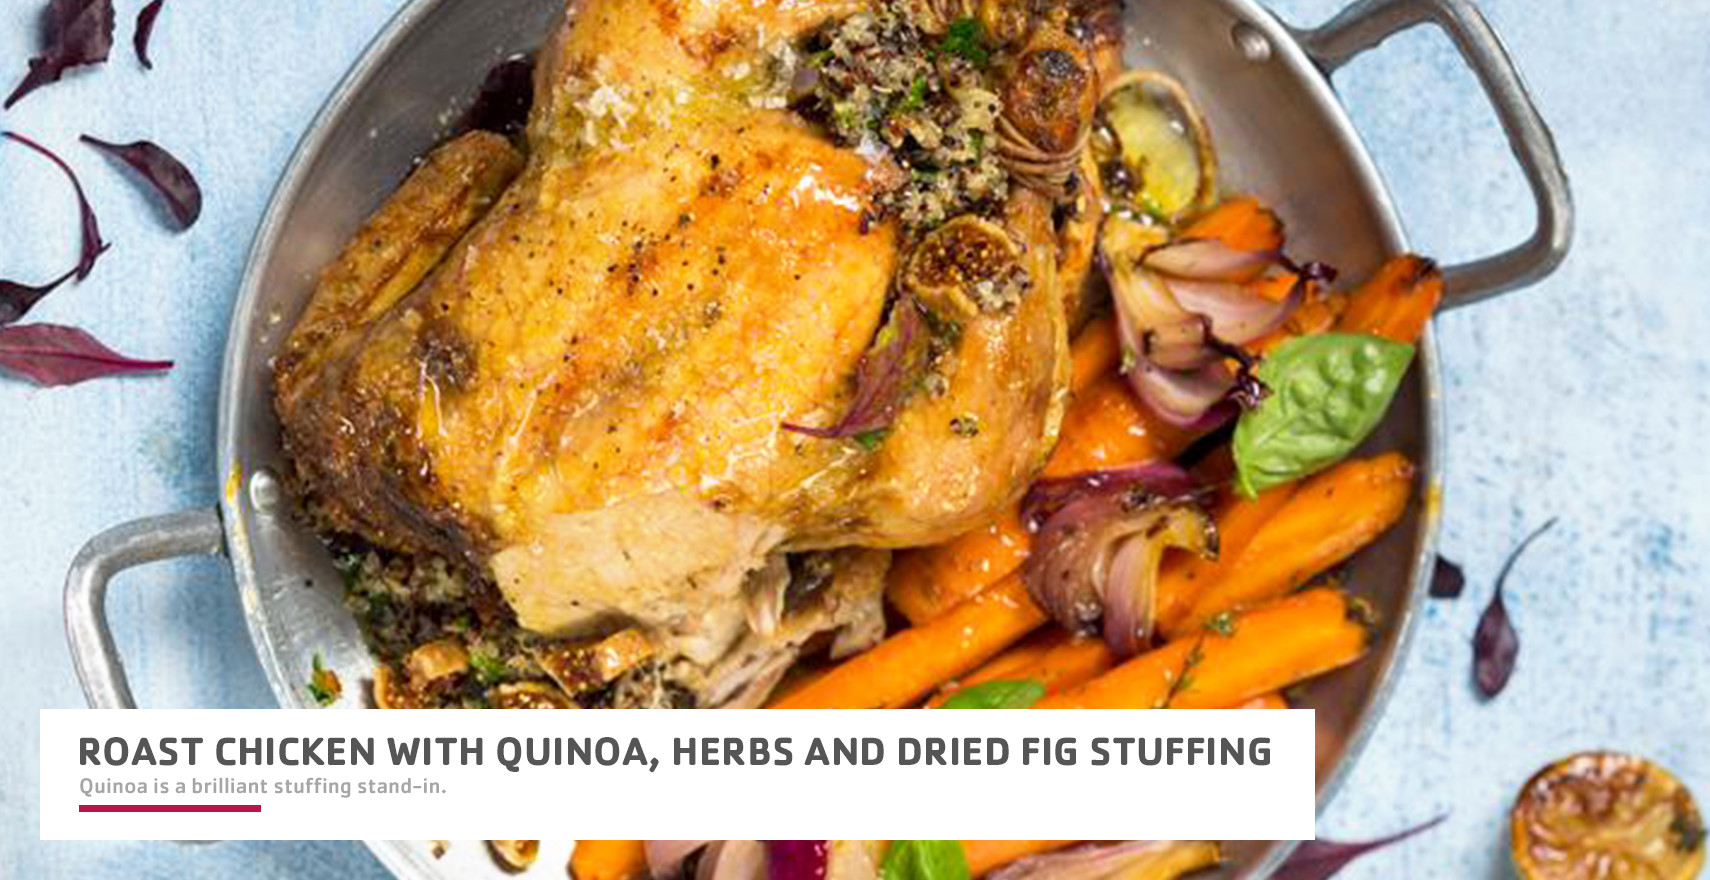 Roast chicken with quinoa herbs and dried fig stuffing header image.jpg